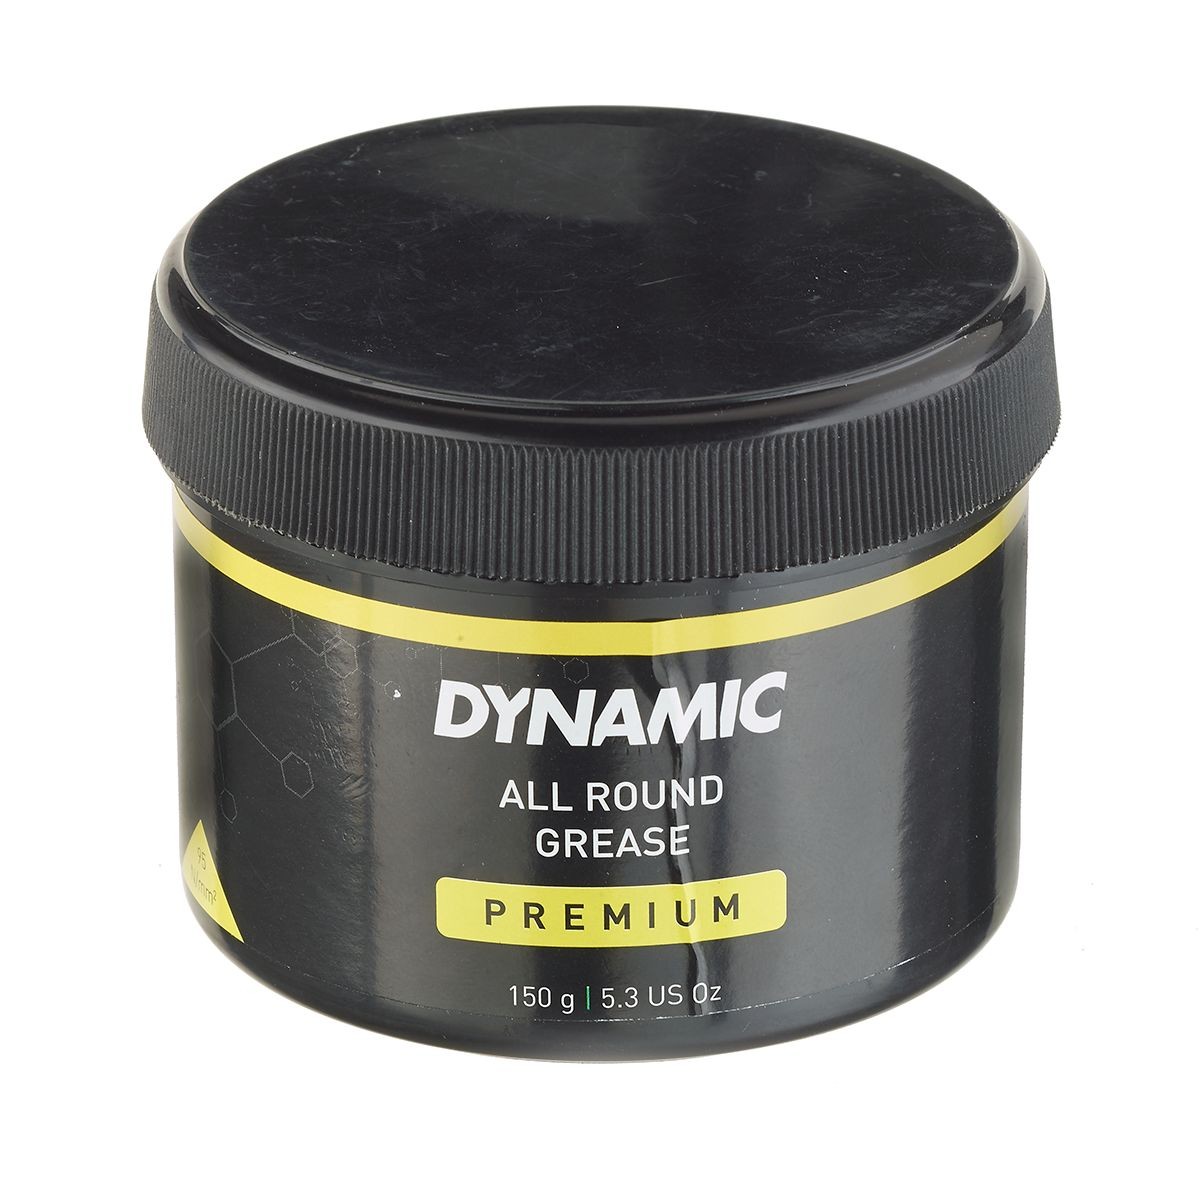 Dynamic high-performance grease | Fedt